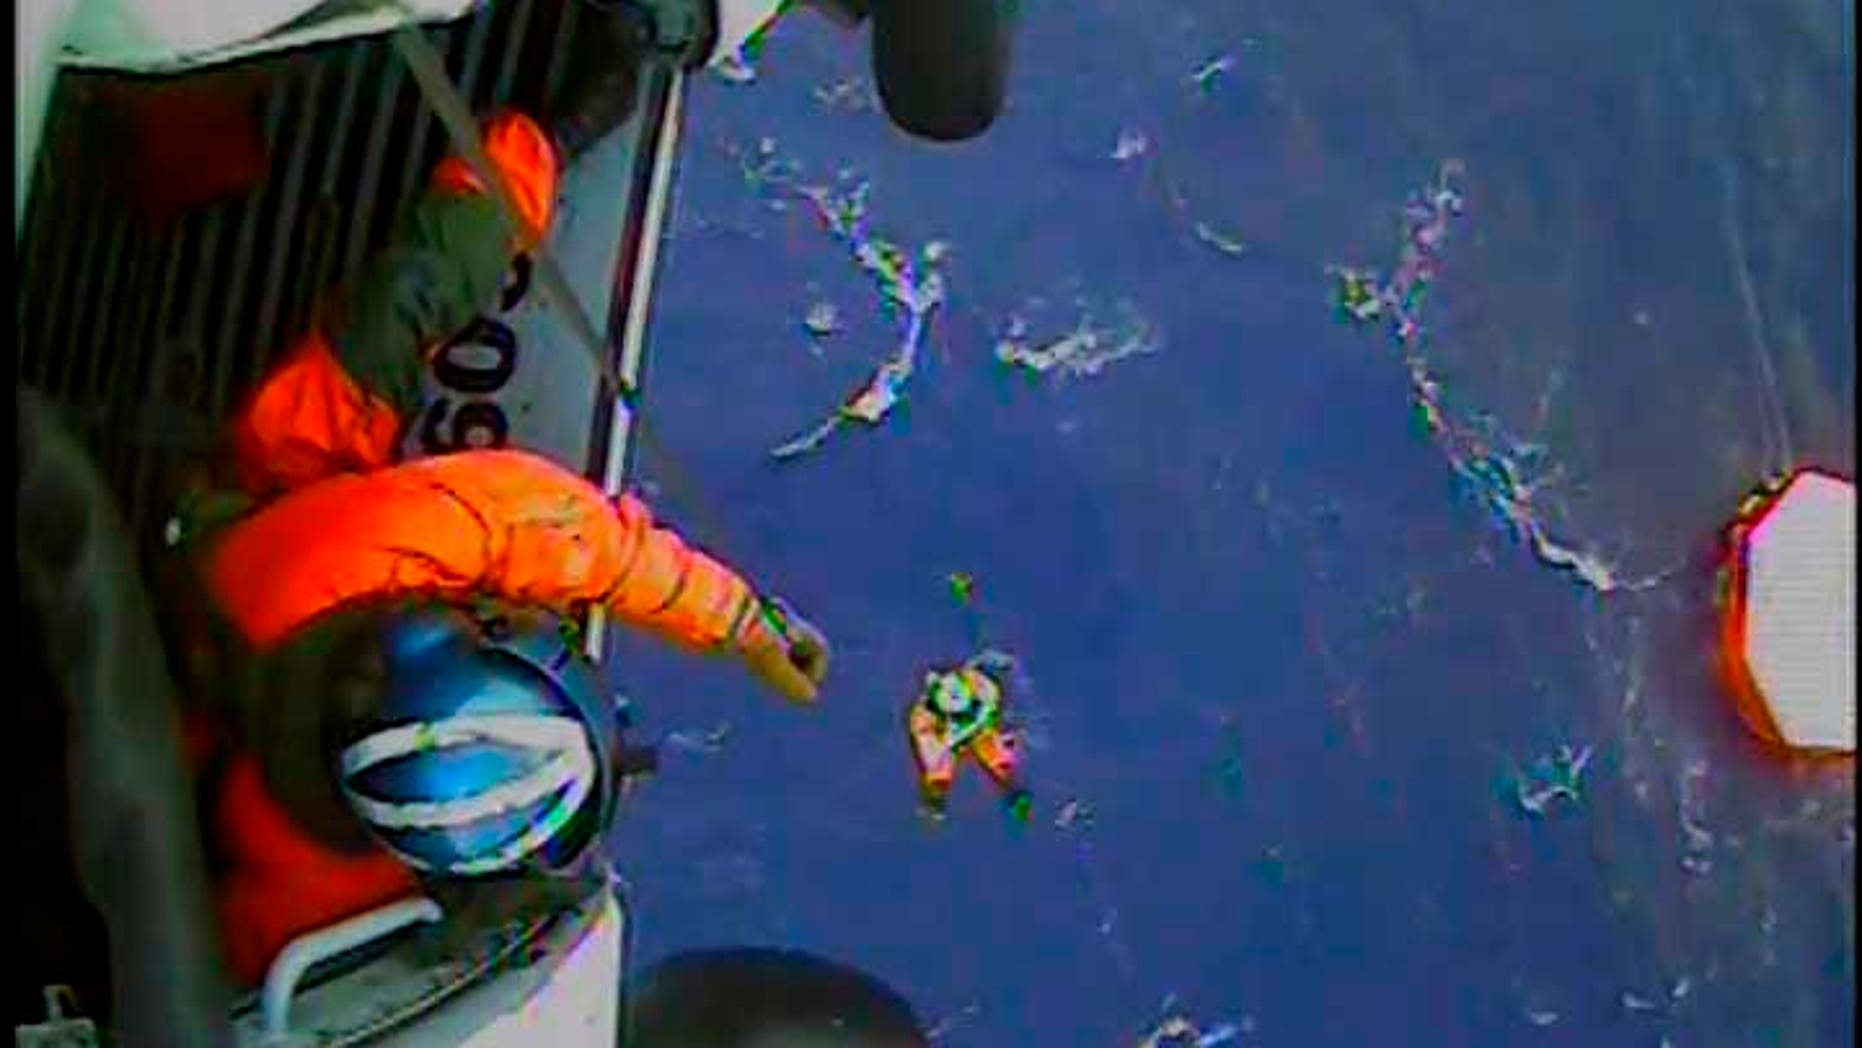 Oct. 29, 2012: A member of the U.S. Coast Guard is lowered to a life raft in the Atlantic Ocean approximately 90 miles southeast of Hatteras, North Carolina.  The U.S. Coast Guard rescued 14 of the 16 crew who abandoned the HMS Bounty while in the path of Hurricane Sandy off North Carolina, using helicopters to lift them from life rafts, the Coast Guard said.